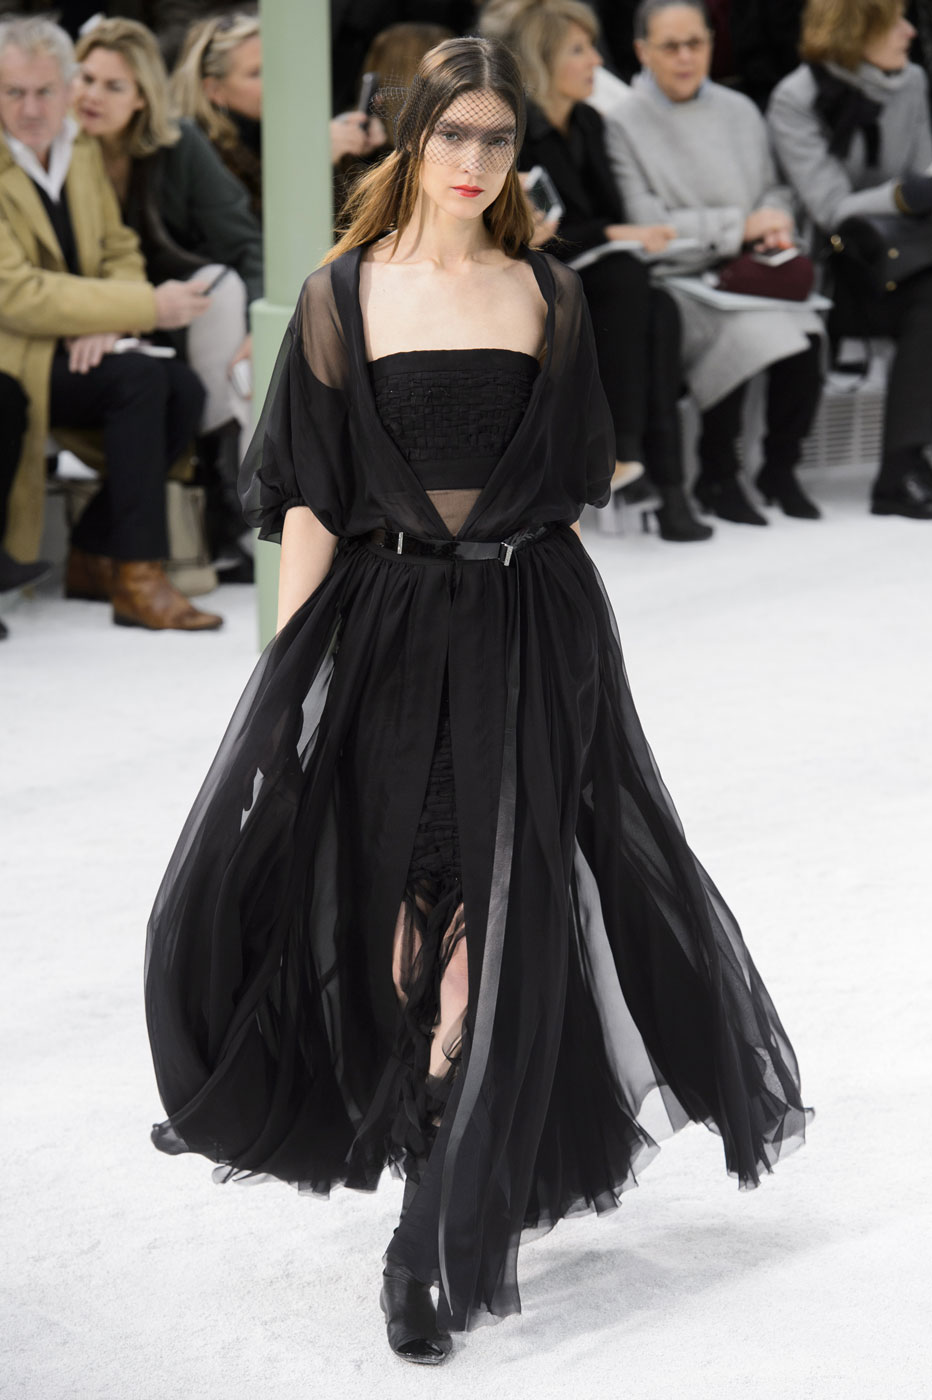 Chanel-fashion-runway-show-haute-couture-paris-spring-summer-2015-the-impression-075